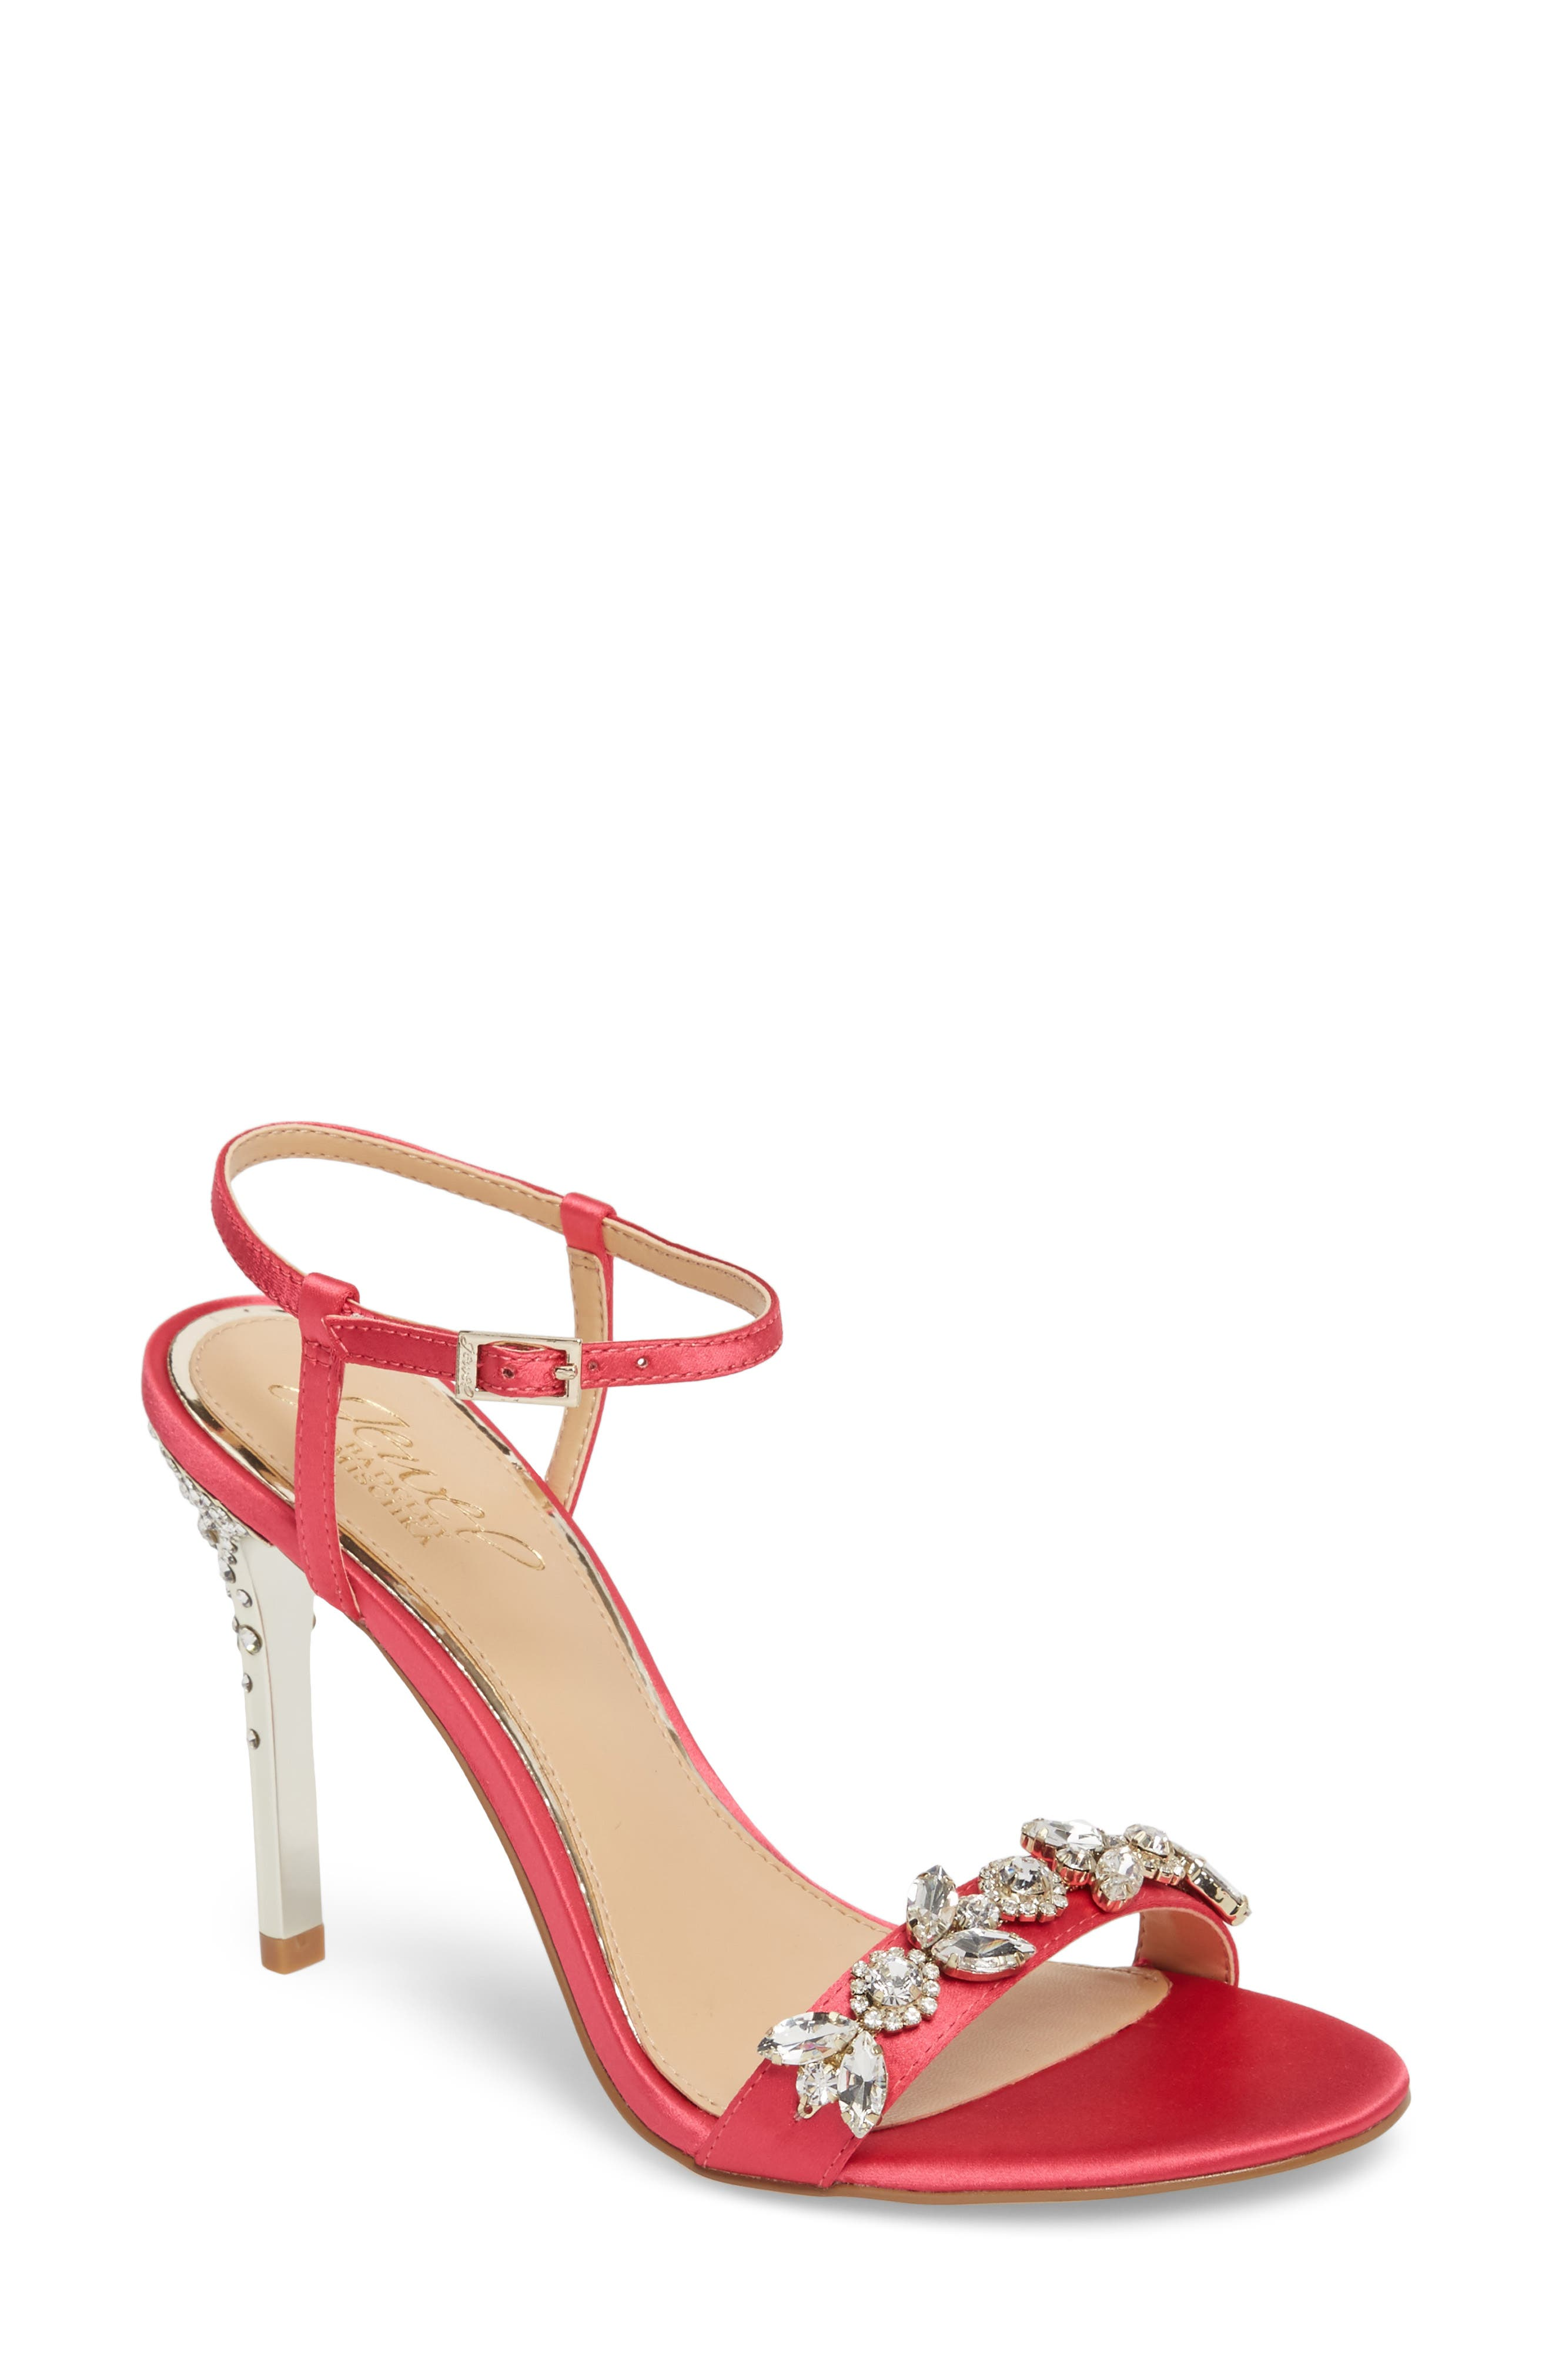 Jewel Badgley Mischka Tex Ankle Strap Sandal (Women)